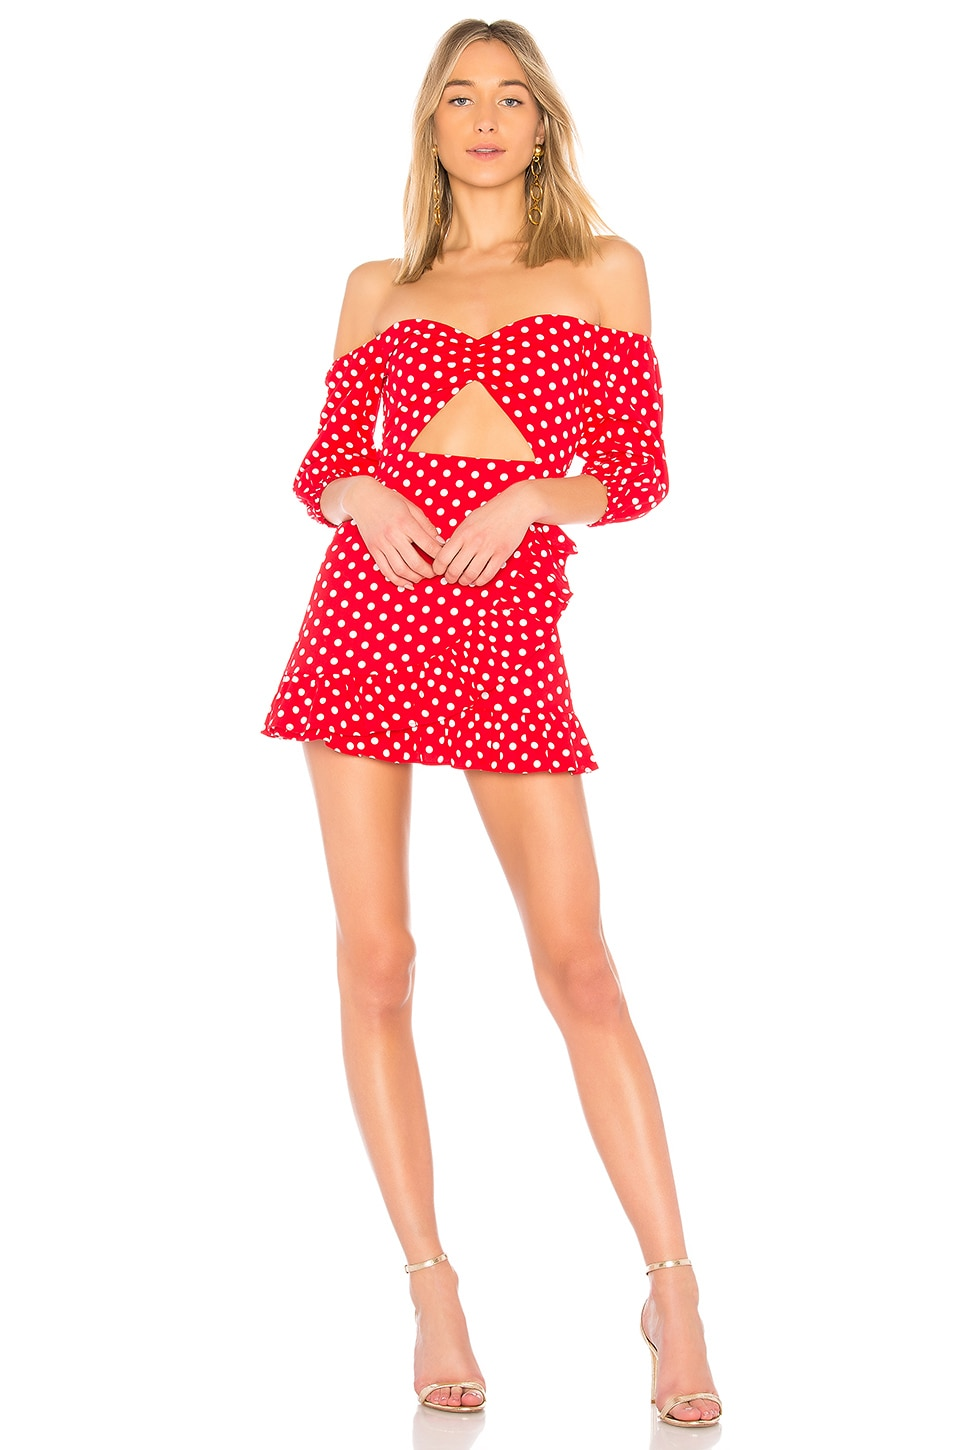 MAJORELLE Michelle Dress in Polka Dot